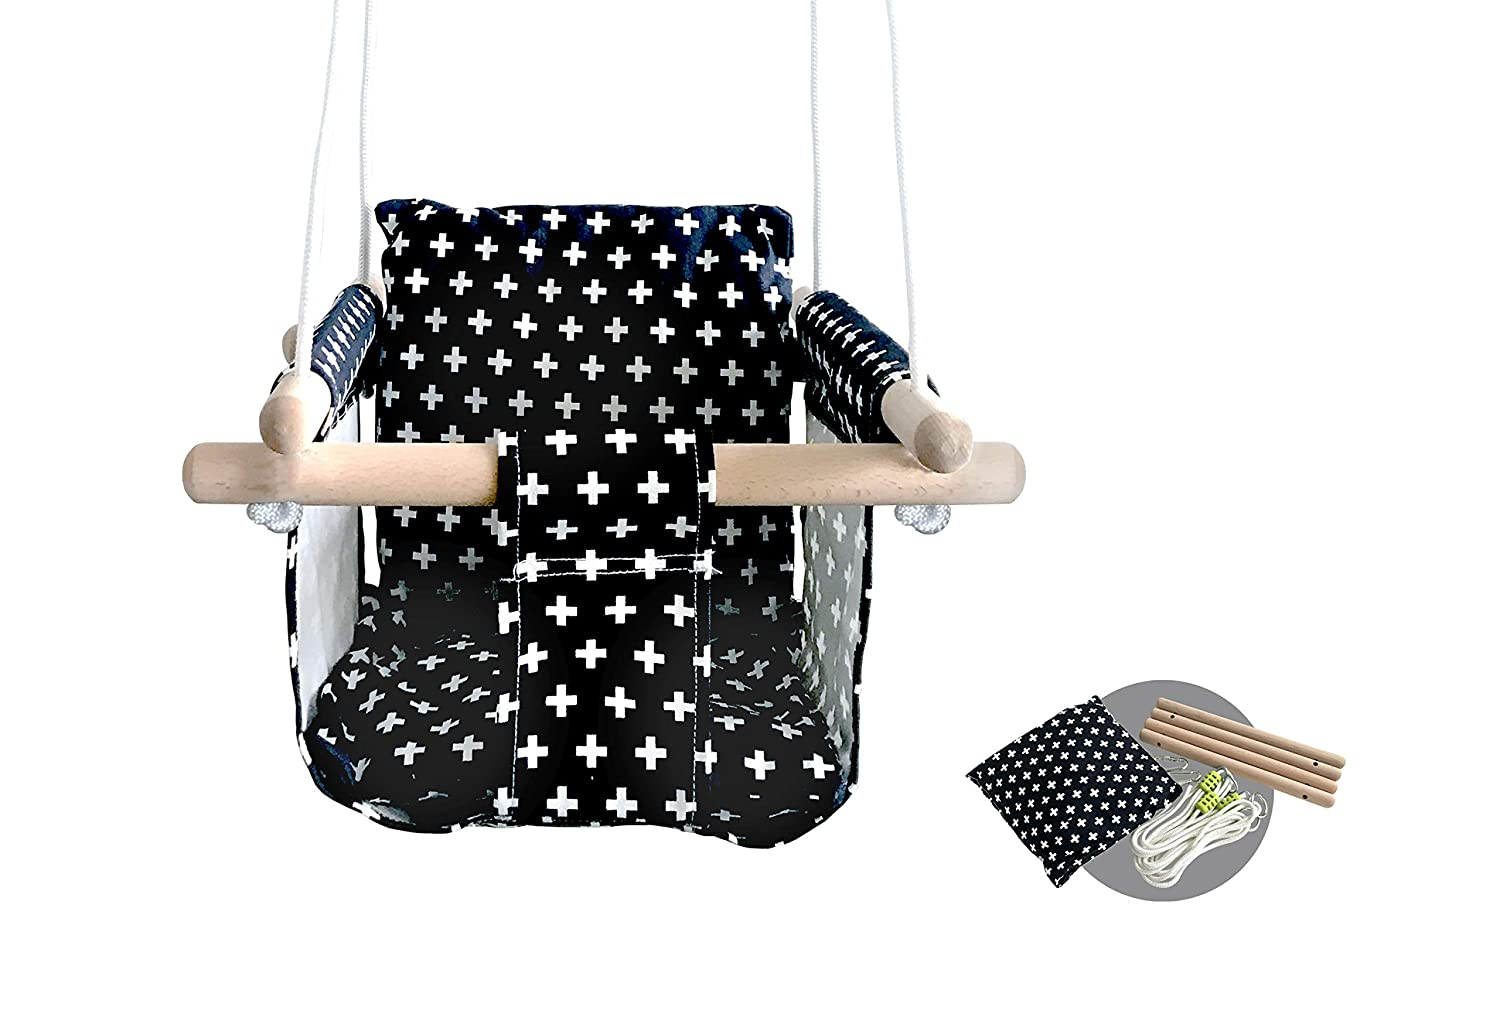 Modern Hammock Swing for Baby with Canvas Design Made of Wood and Polyester Fabric Baby Hanging Swing Chair Color Blue and White Triangular Lines Safe Sturdy Swing Seat Design for Infant Babies